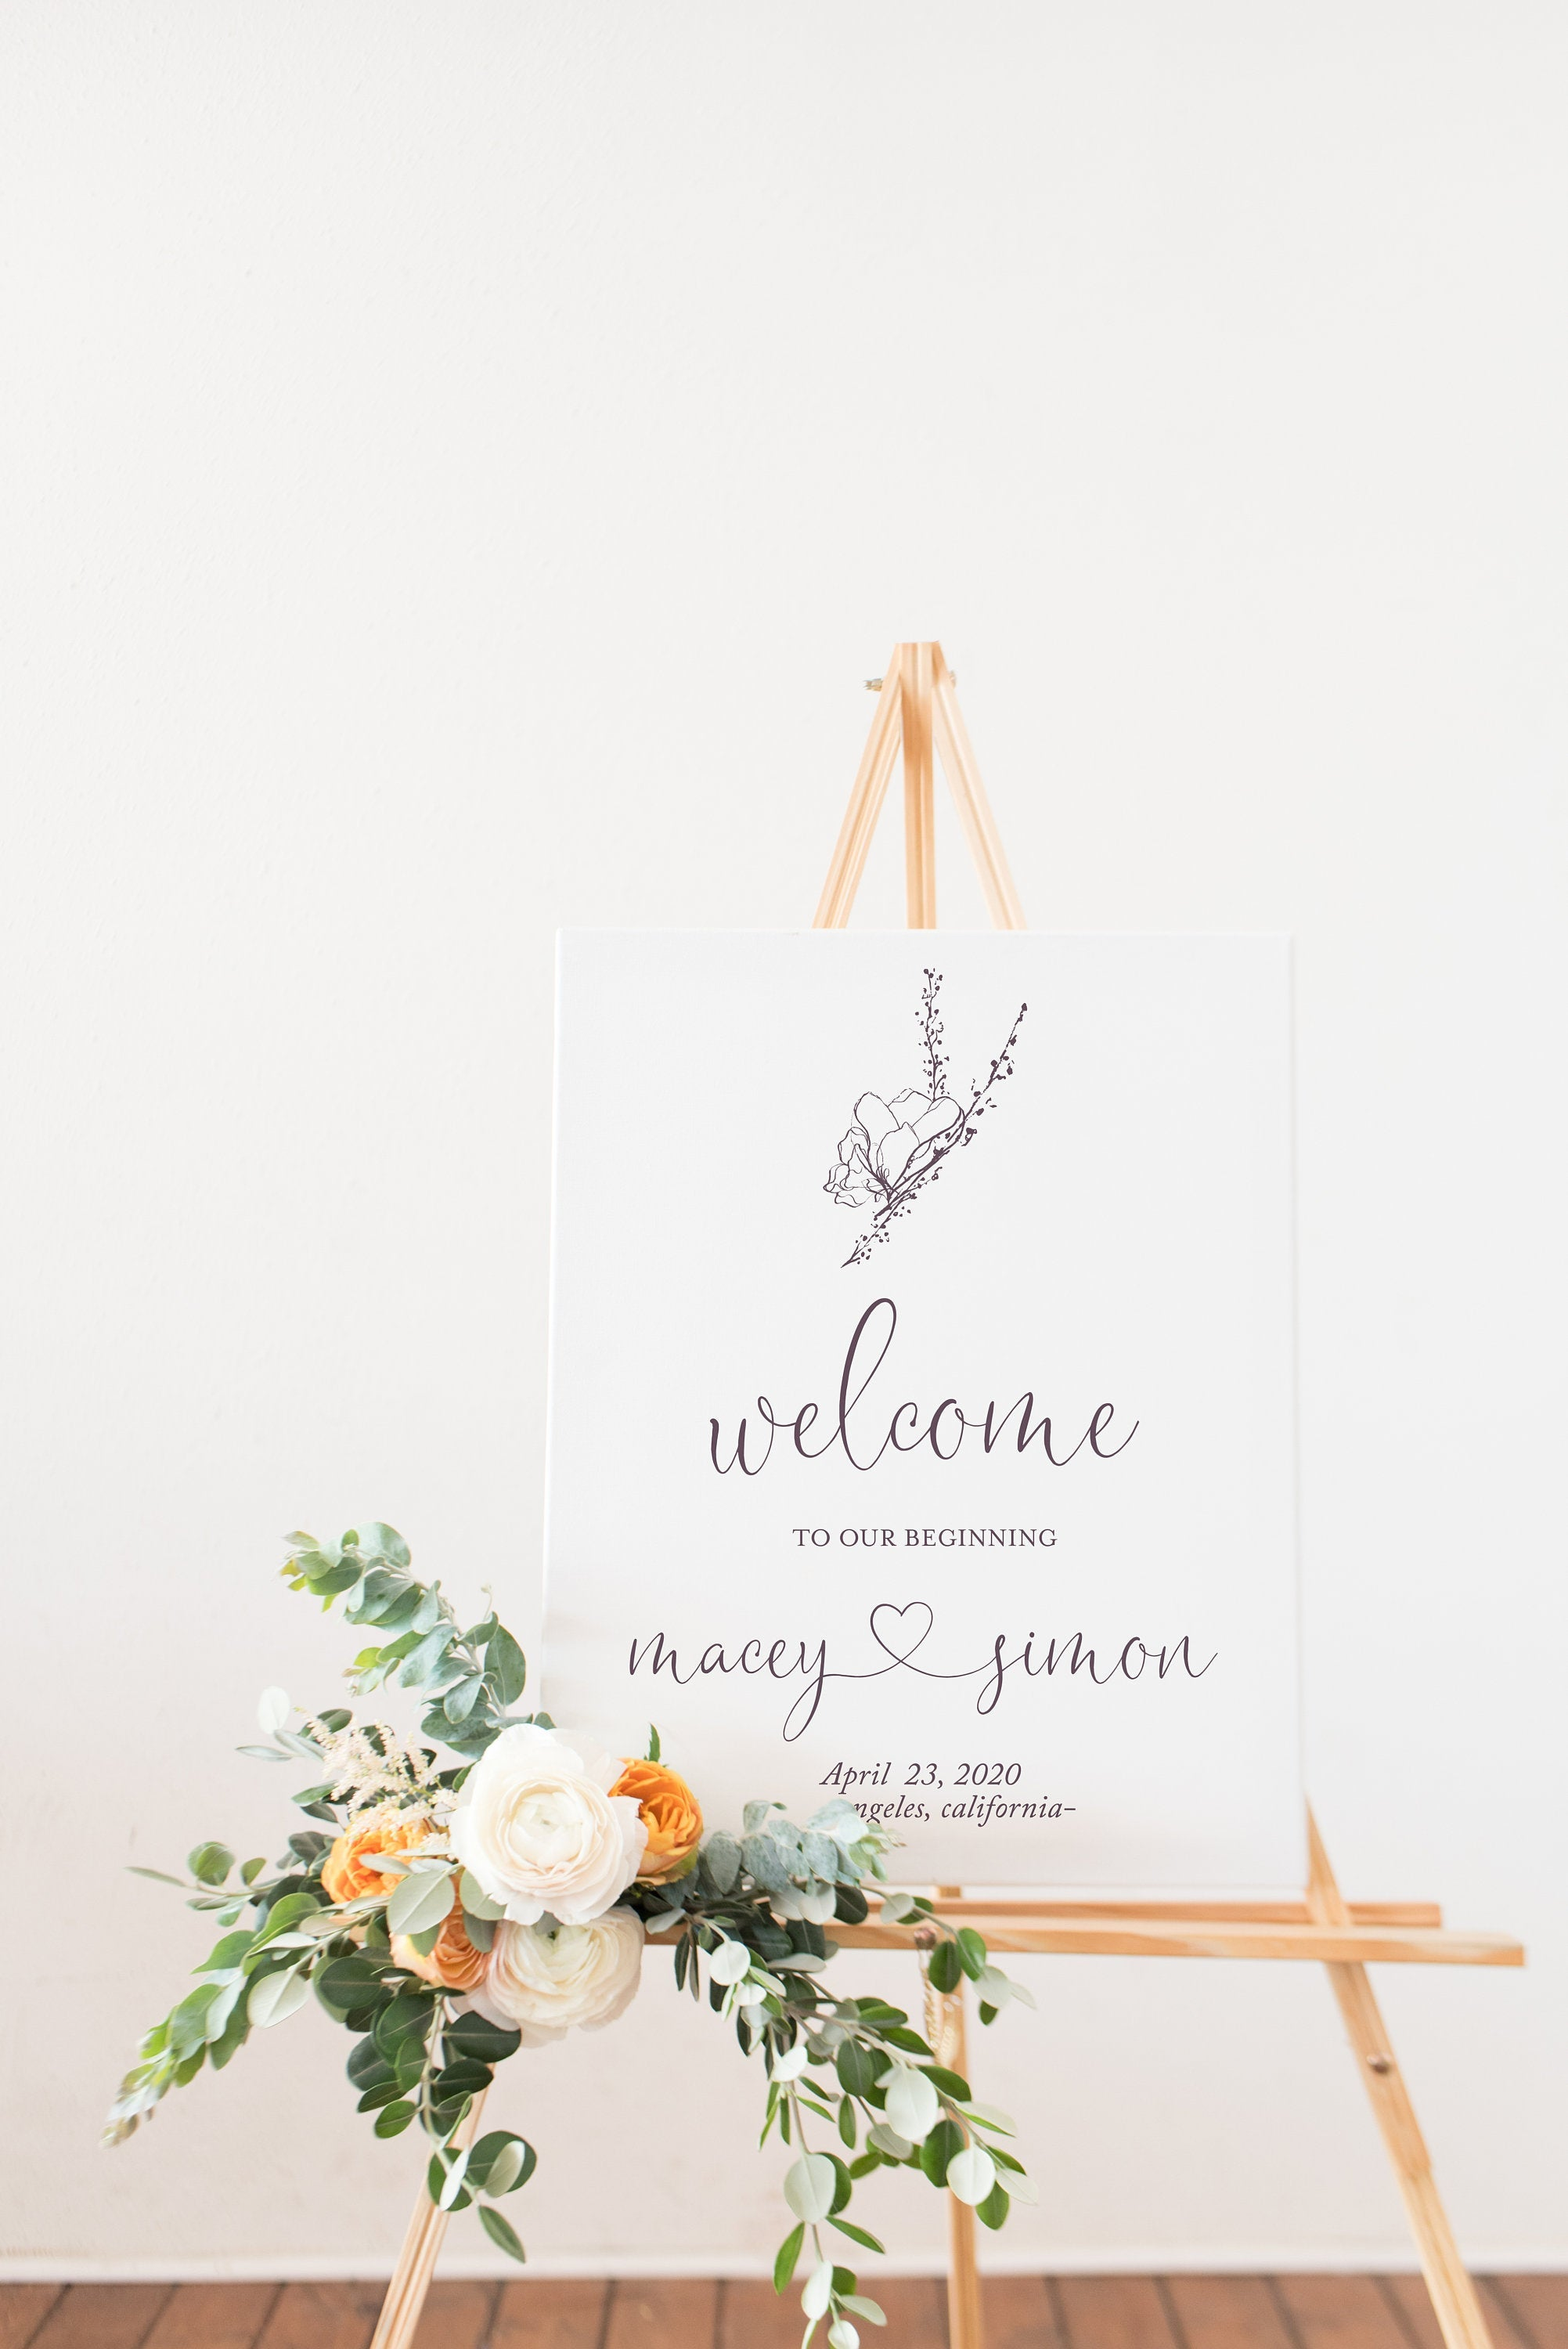 Printable Wedding Welcome Sign Editable Template Instant Download - Macey